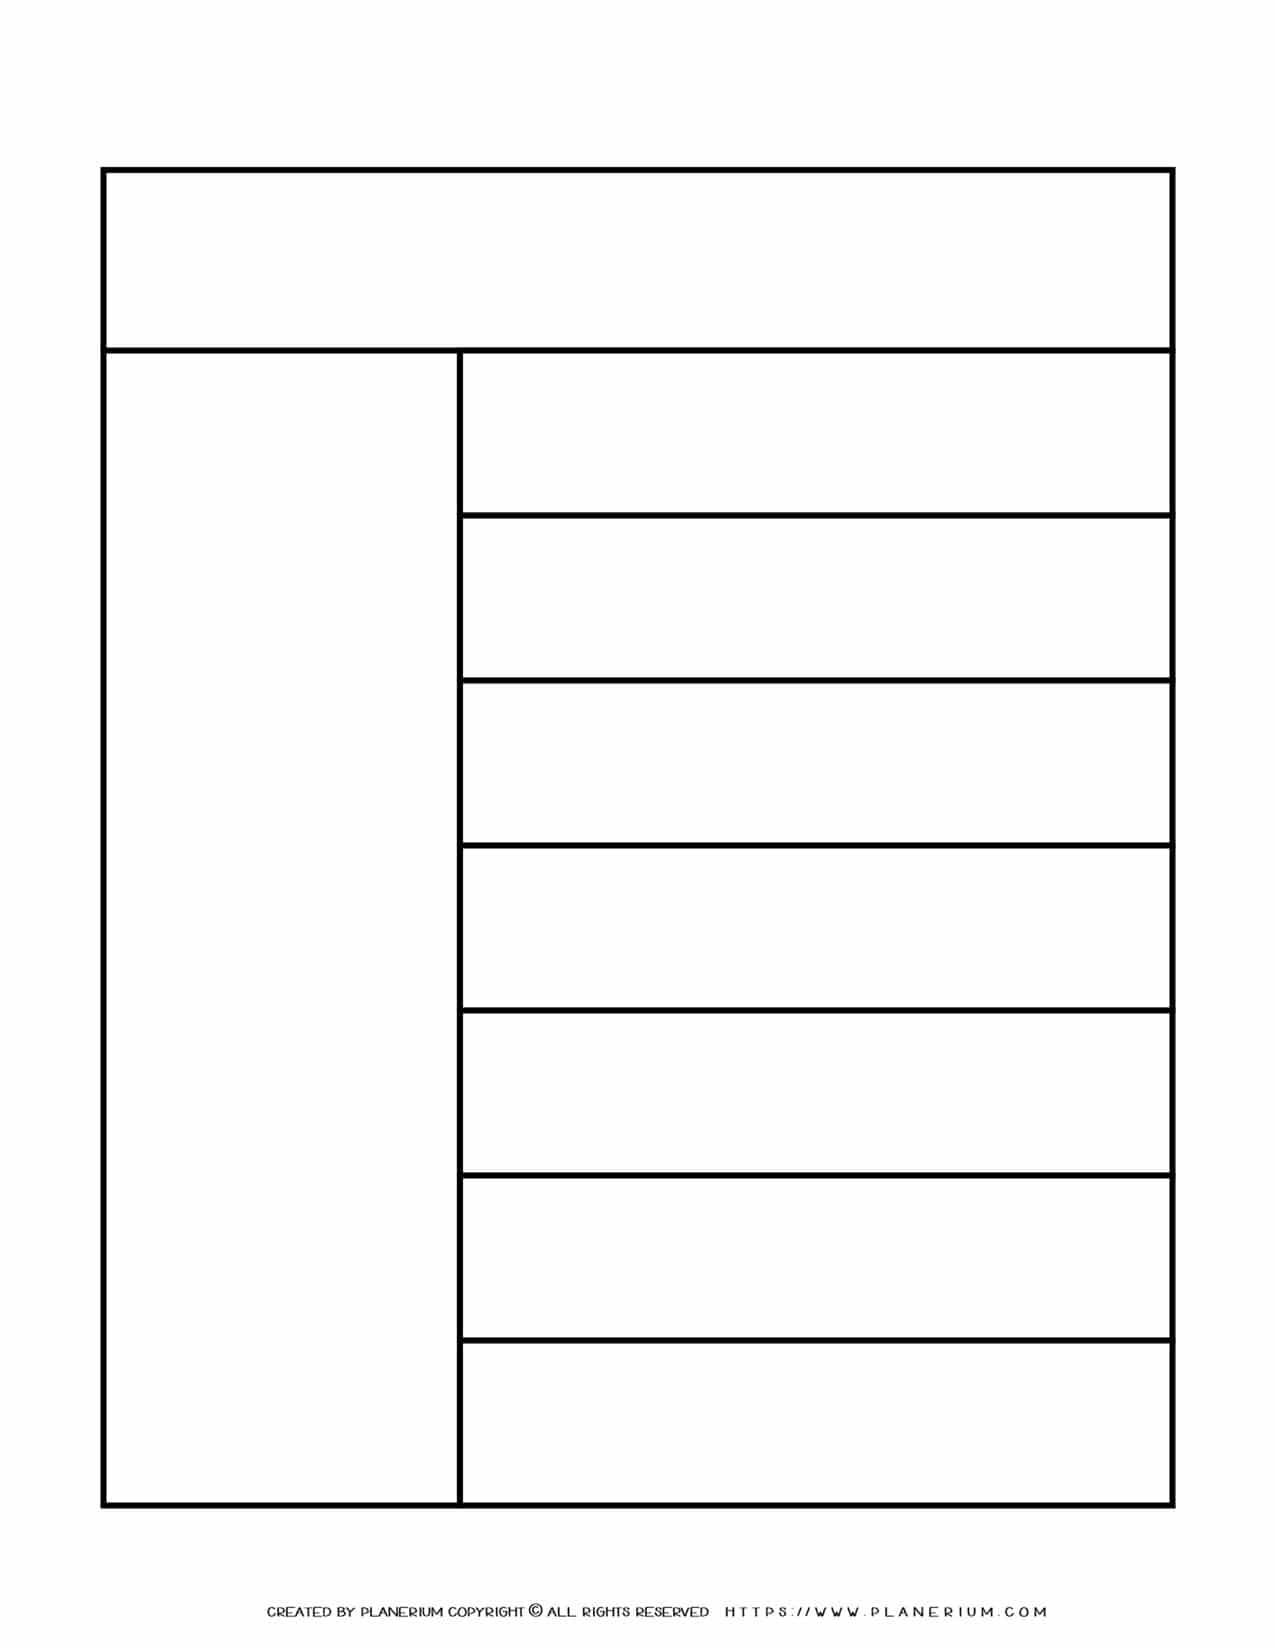 Graphic Organizer Templates - Chart with One Column and Seven Rows | Planerium